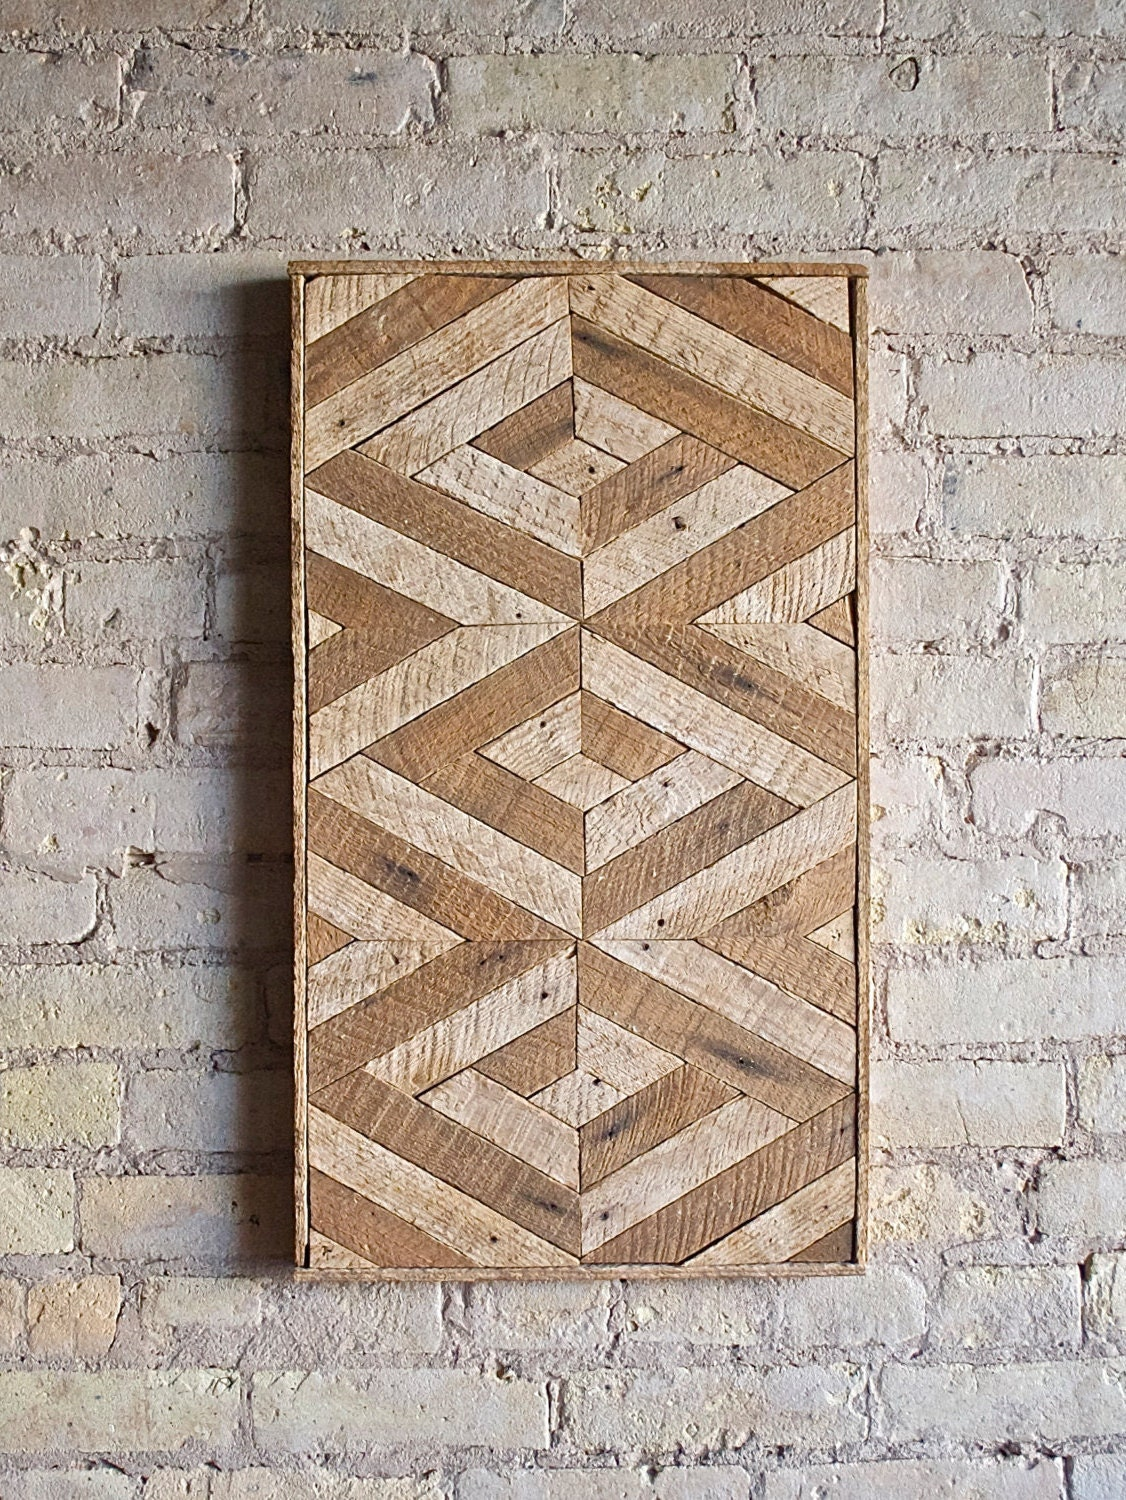 Reclaimed wood wall art lath decor pattern 3d for Wood decoration patterns